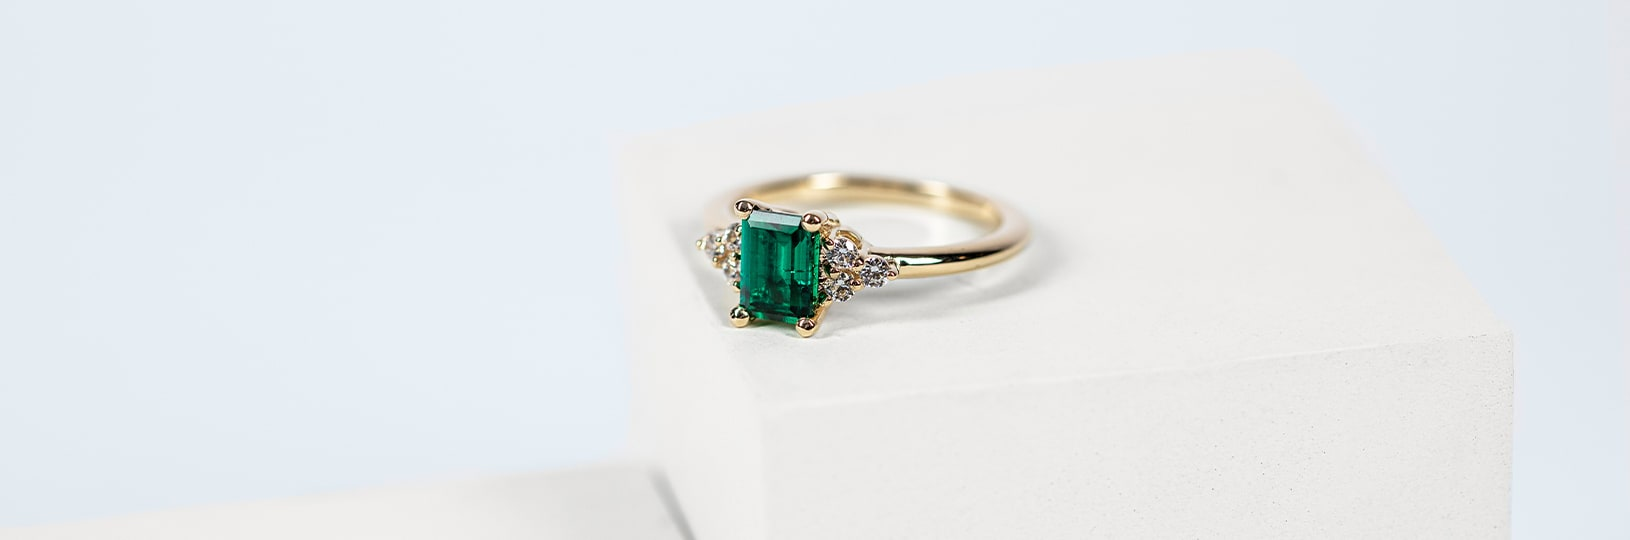 Colorful gemstones, such as emerald, make for a great diamond alternative